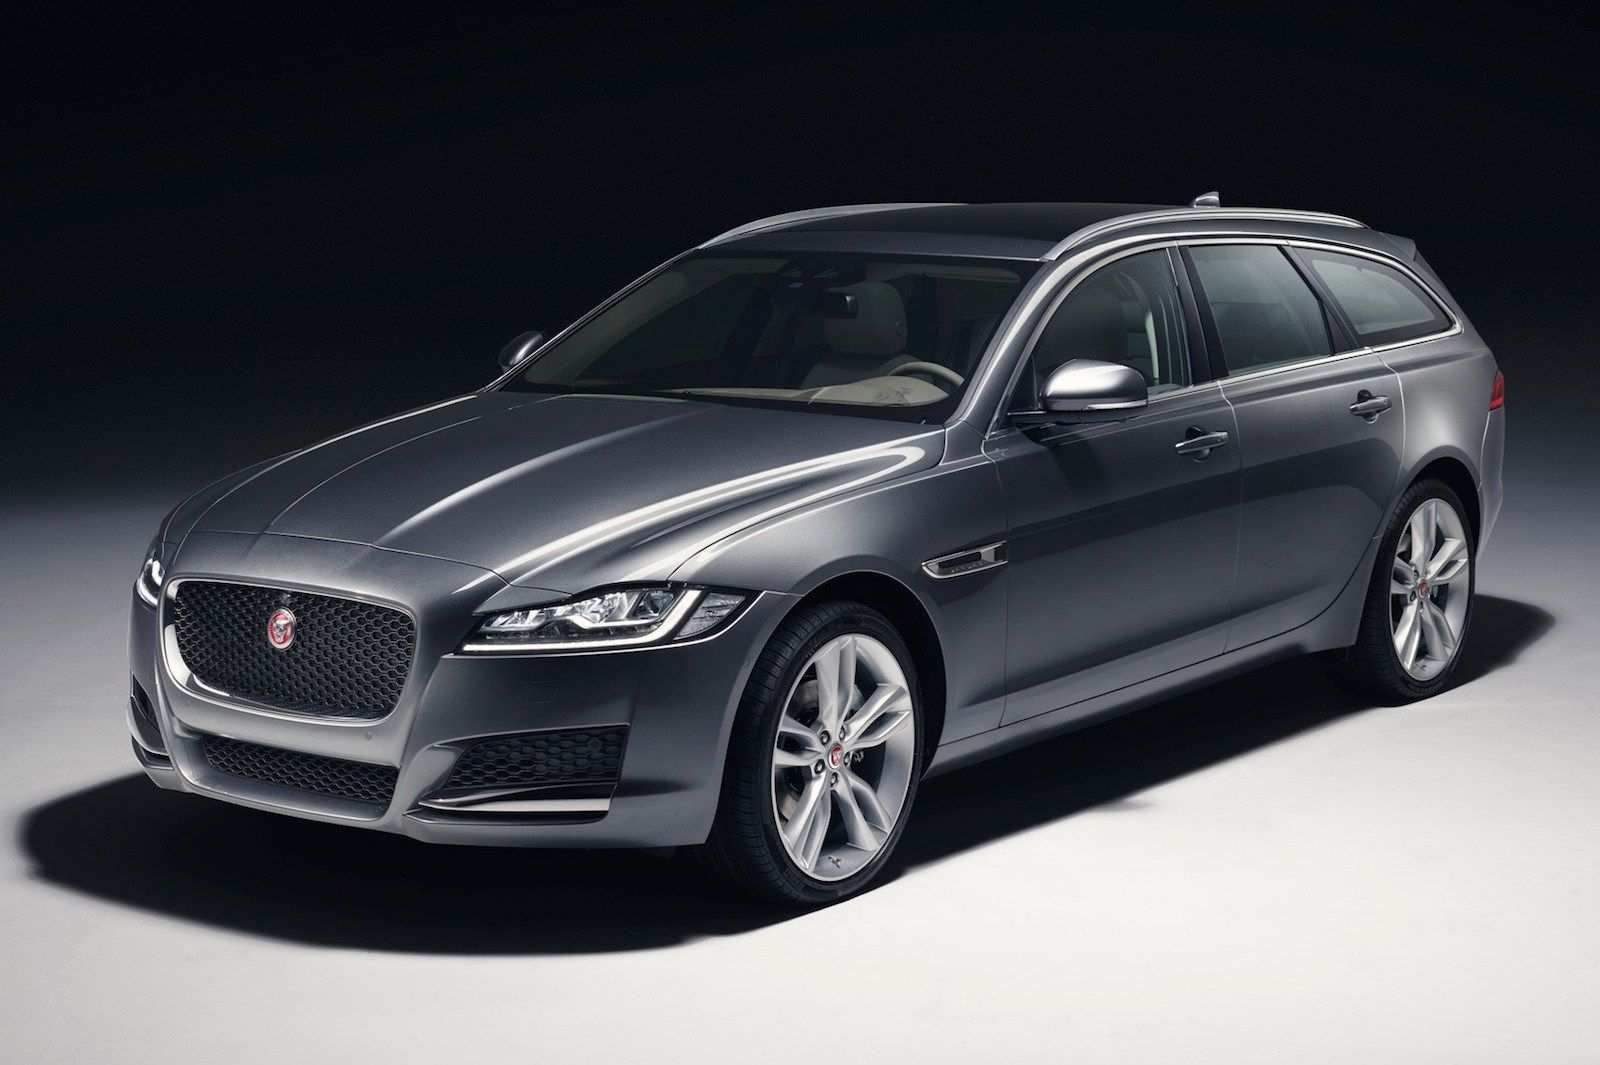 35 All New 2019 Jaguar Station Wagon Redesign and Concept for 2019 Jaguar Station Wagon